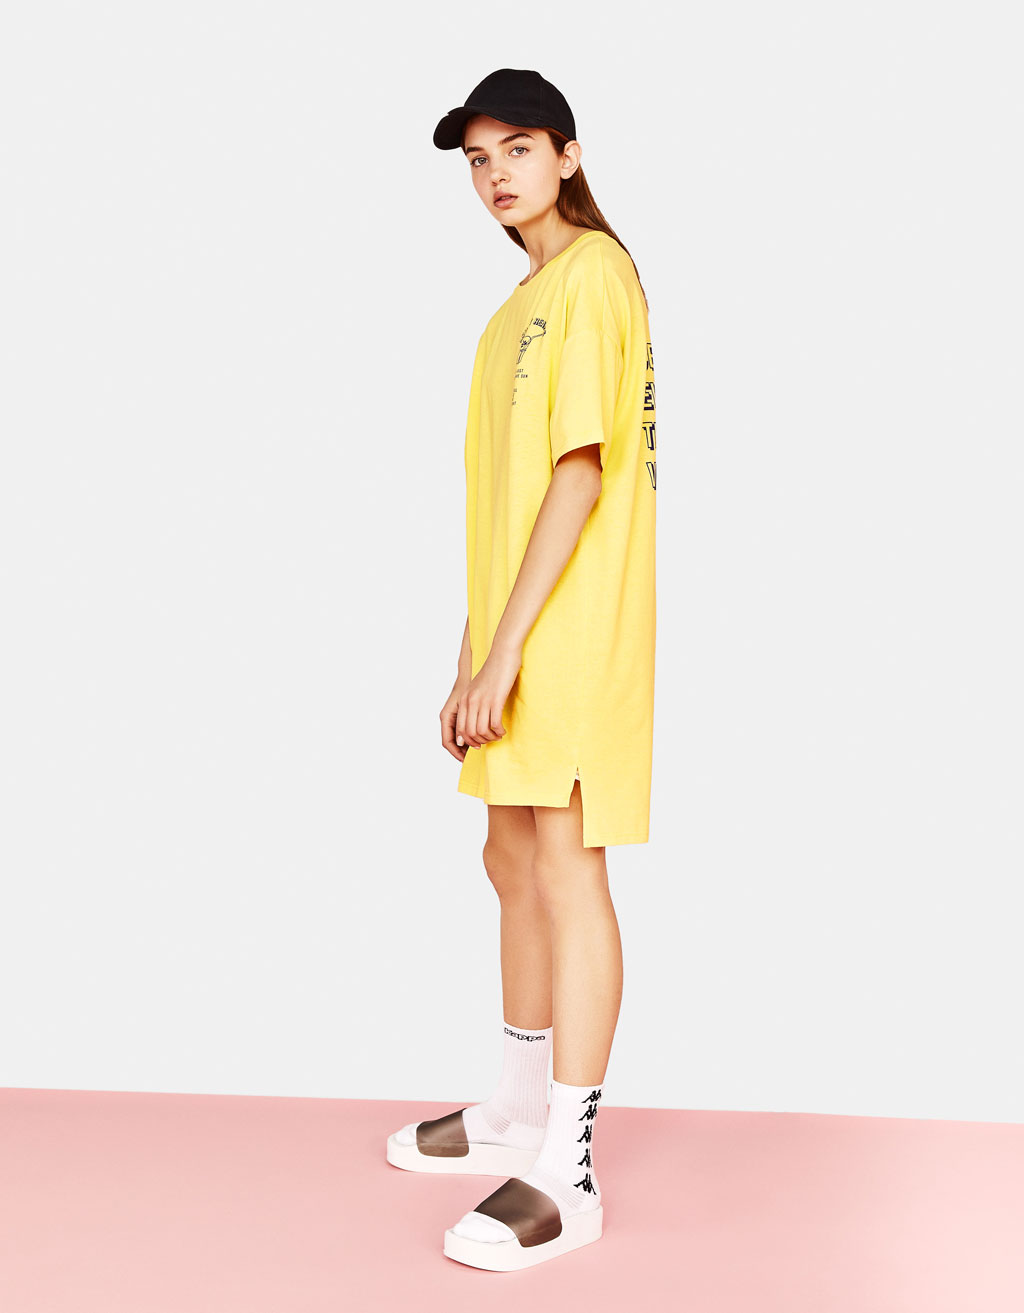 T-shirt dress with slogan